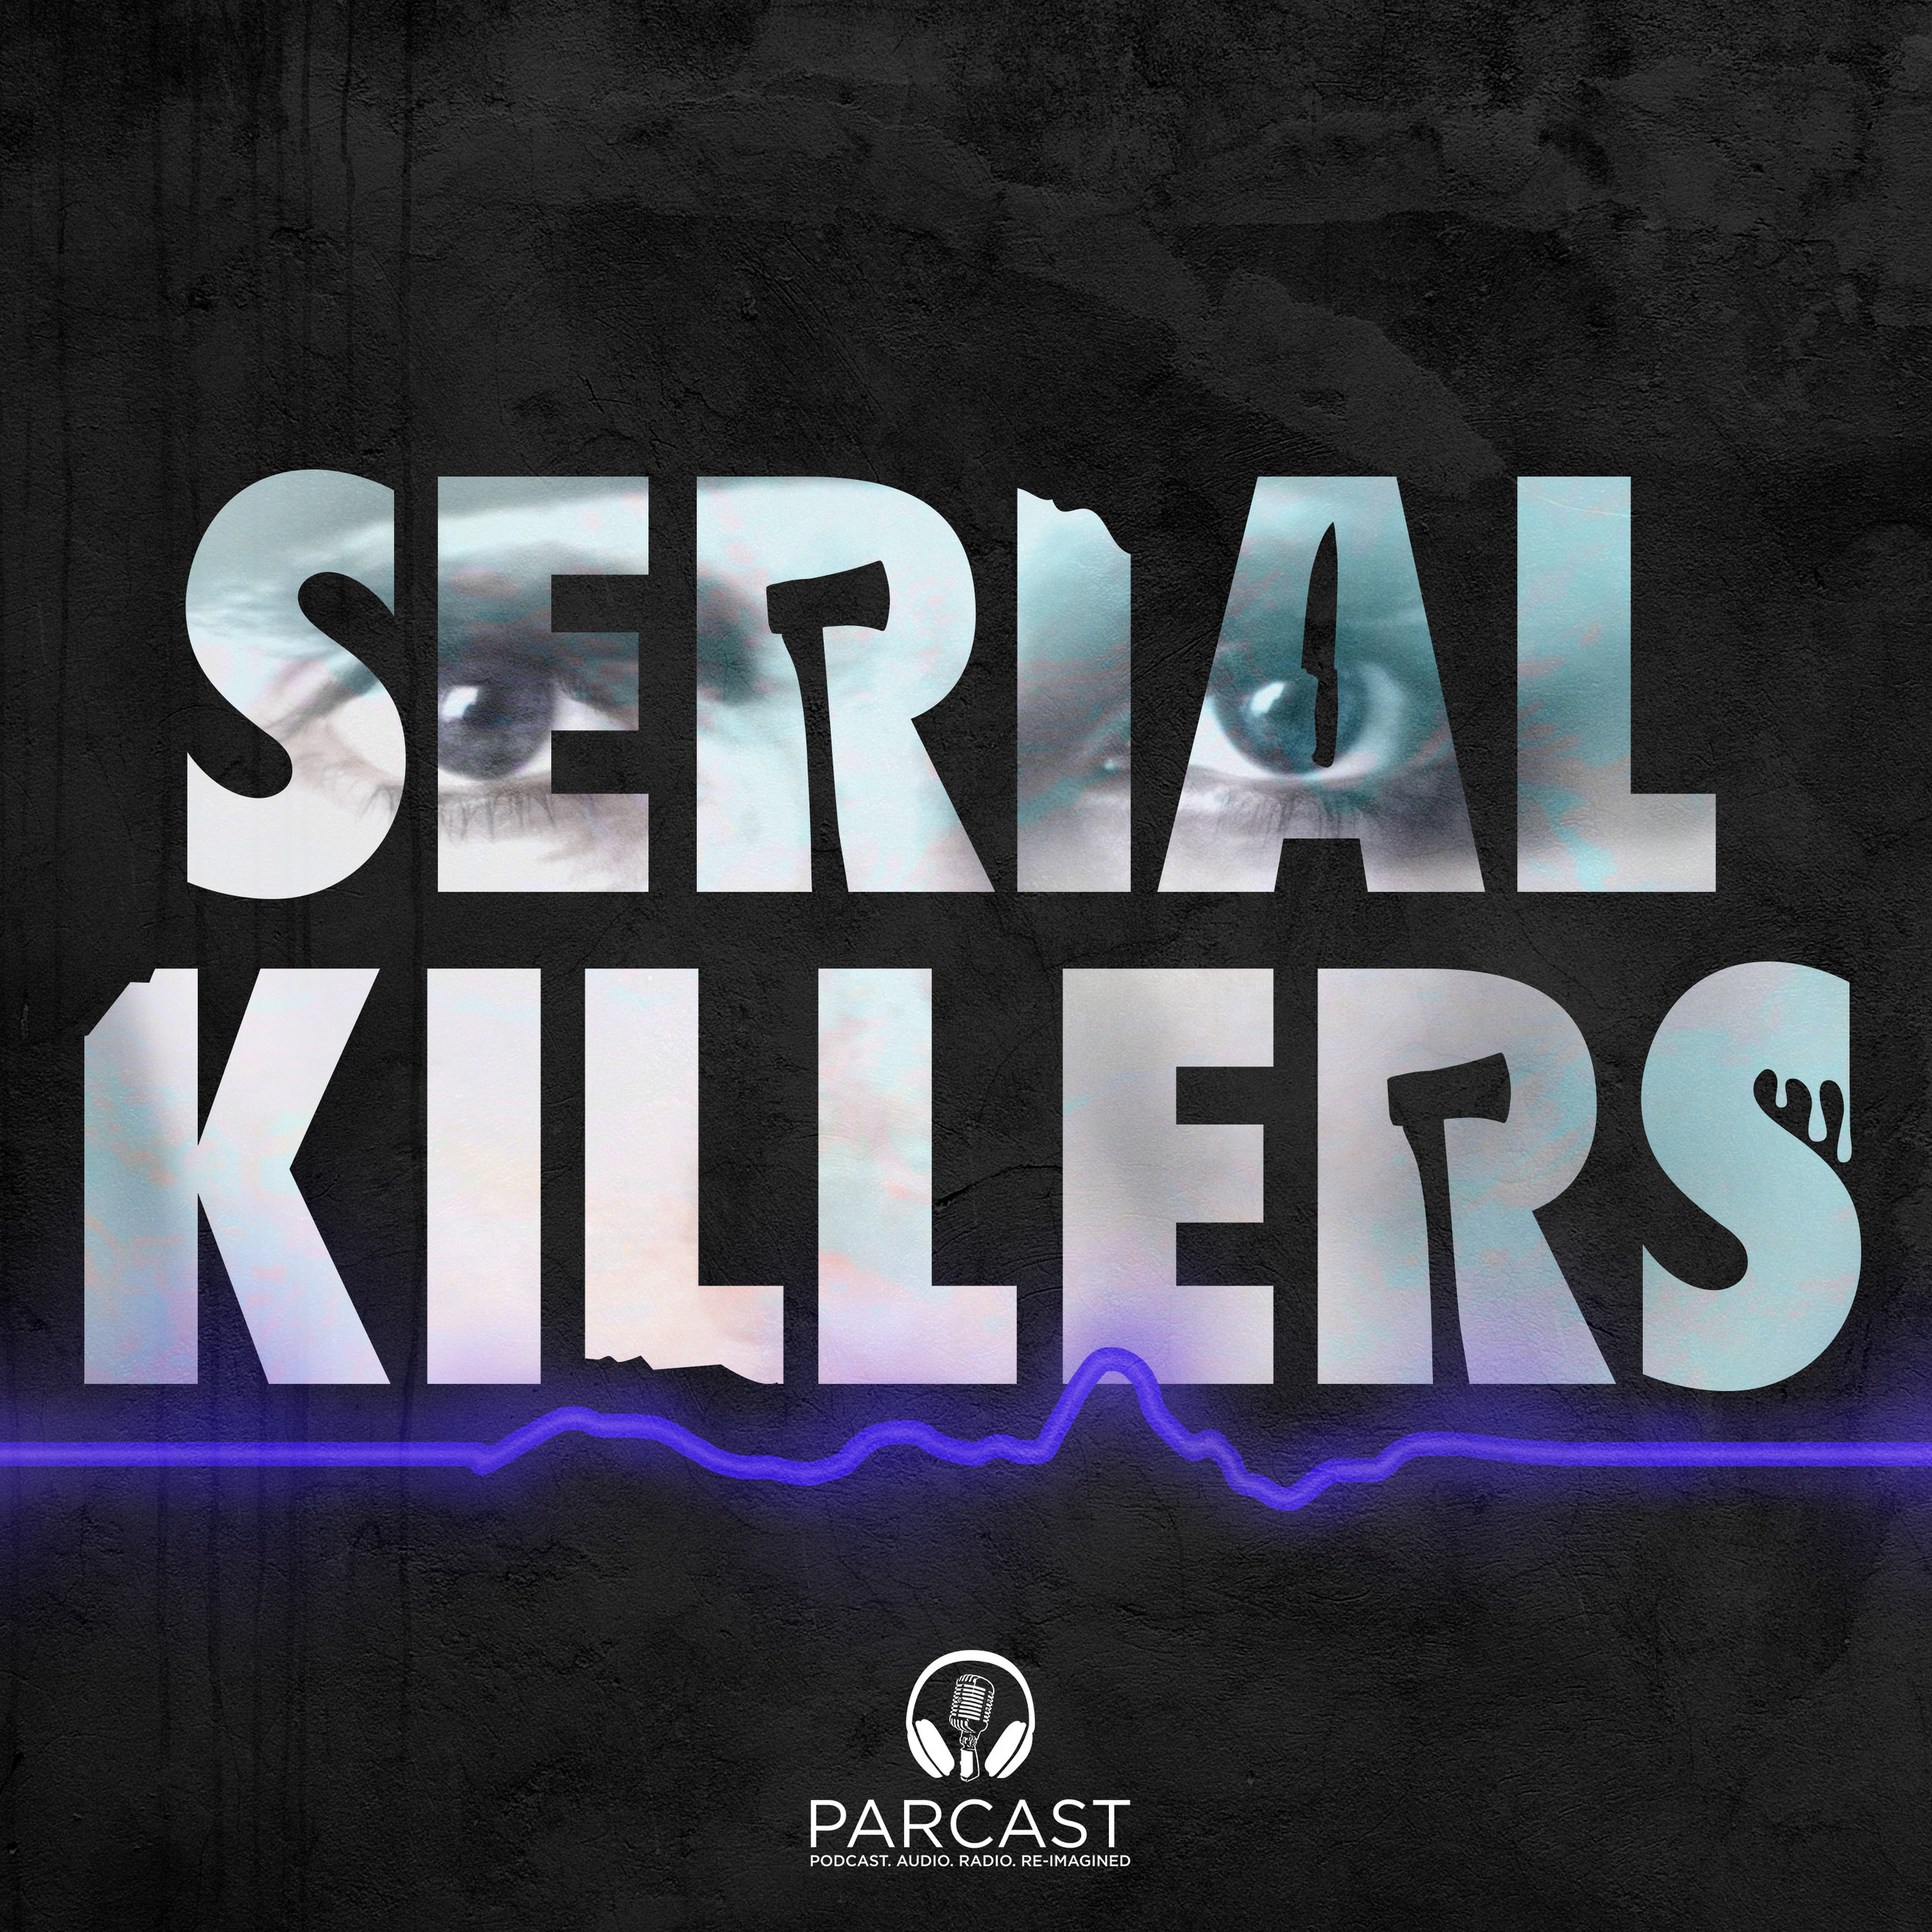 SerialKillers_artwork (1).jpg